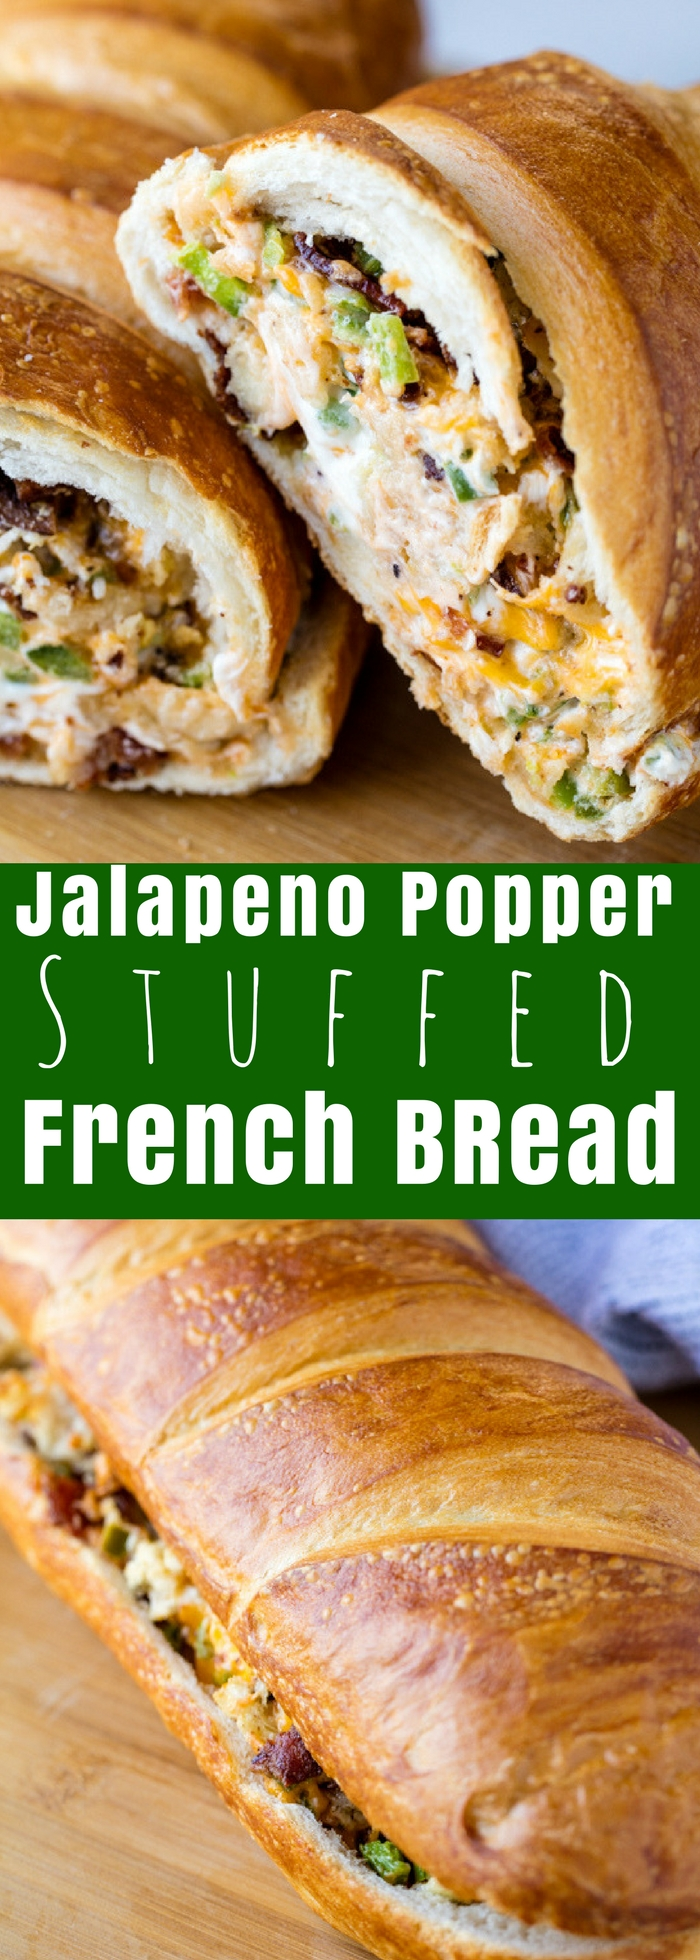 Do you love jalapeno poppers? Then you'll love this Cheesy Jalapeno Popper Stuffed French Bread. It takes all the flavors you love from jalapeno poppers, and puts into one easy appetizer or side dish that's super tasty!